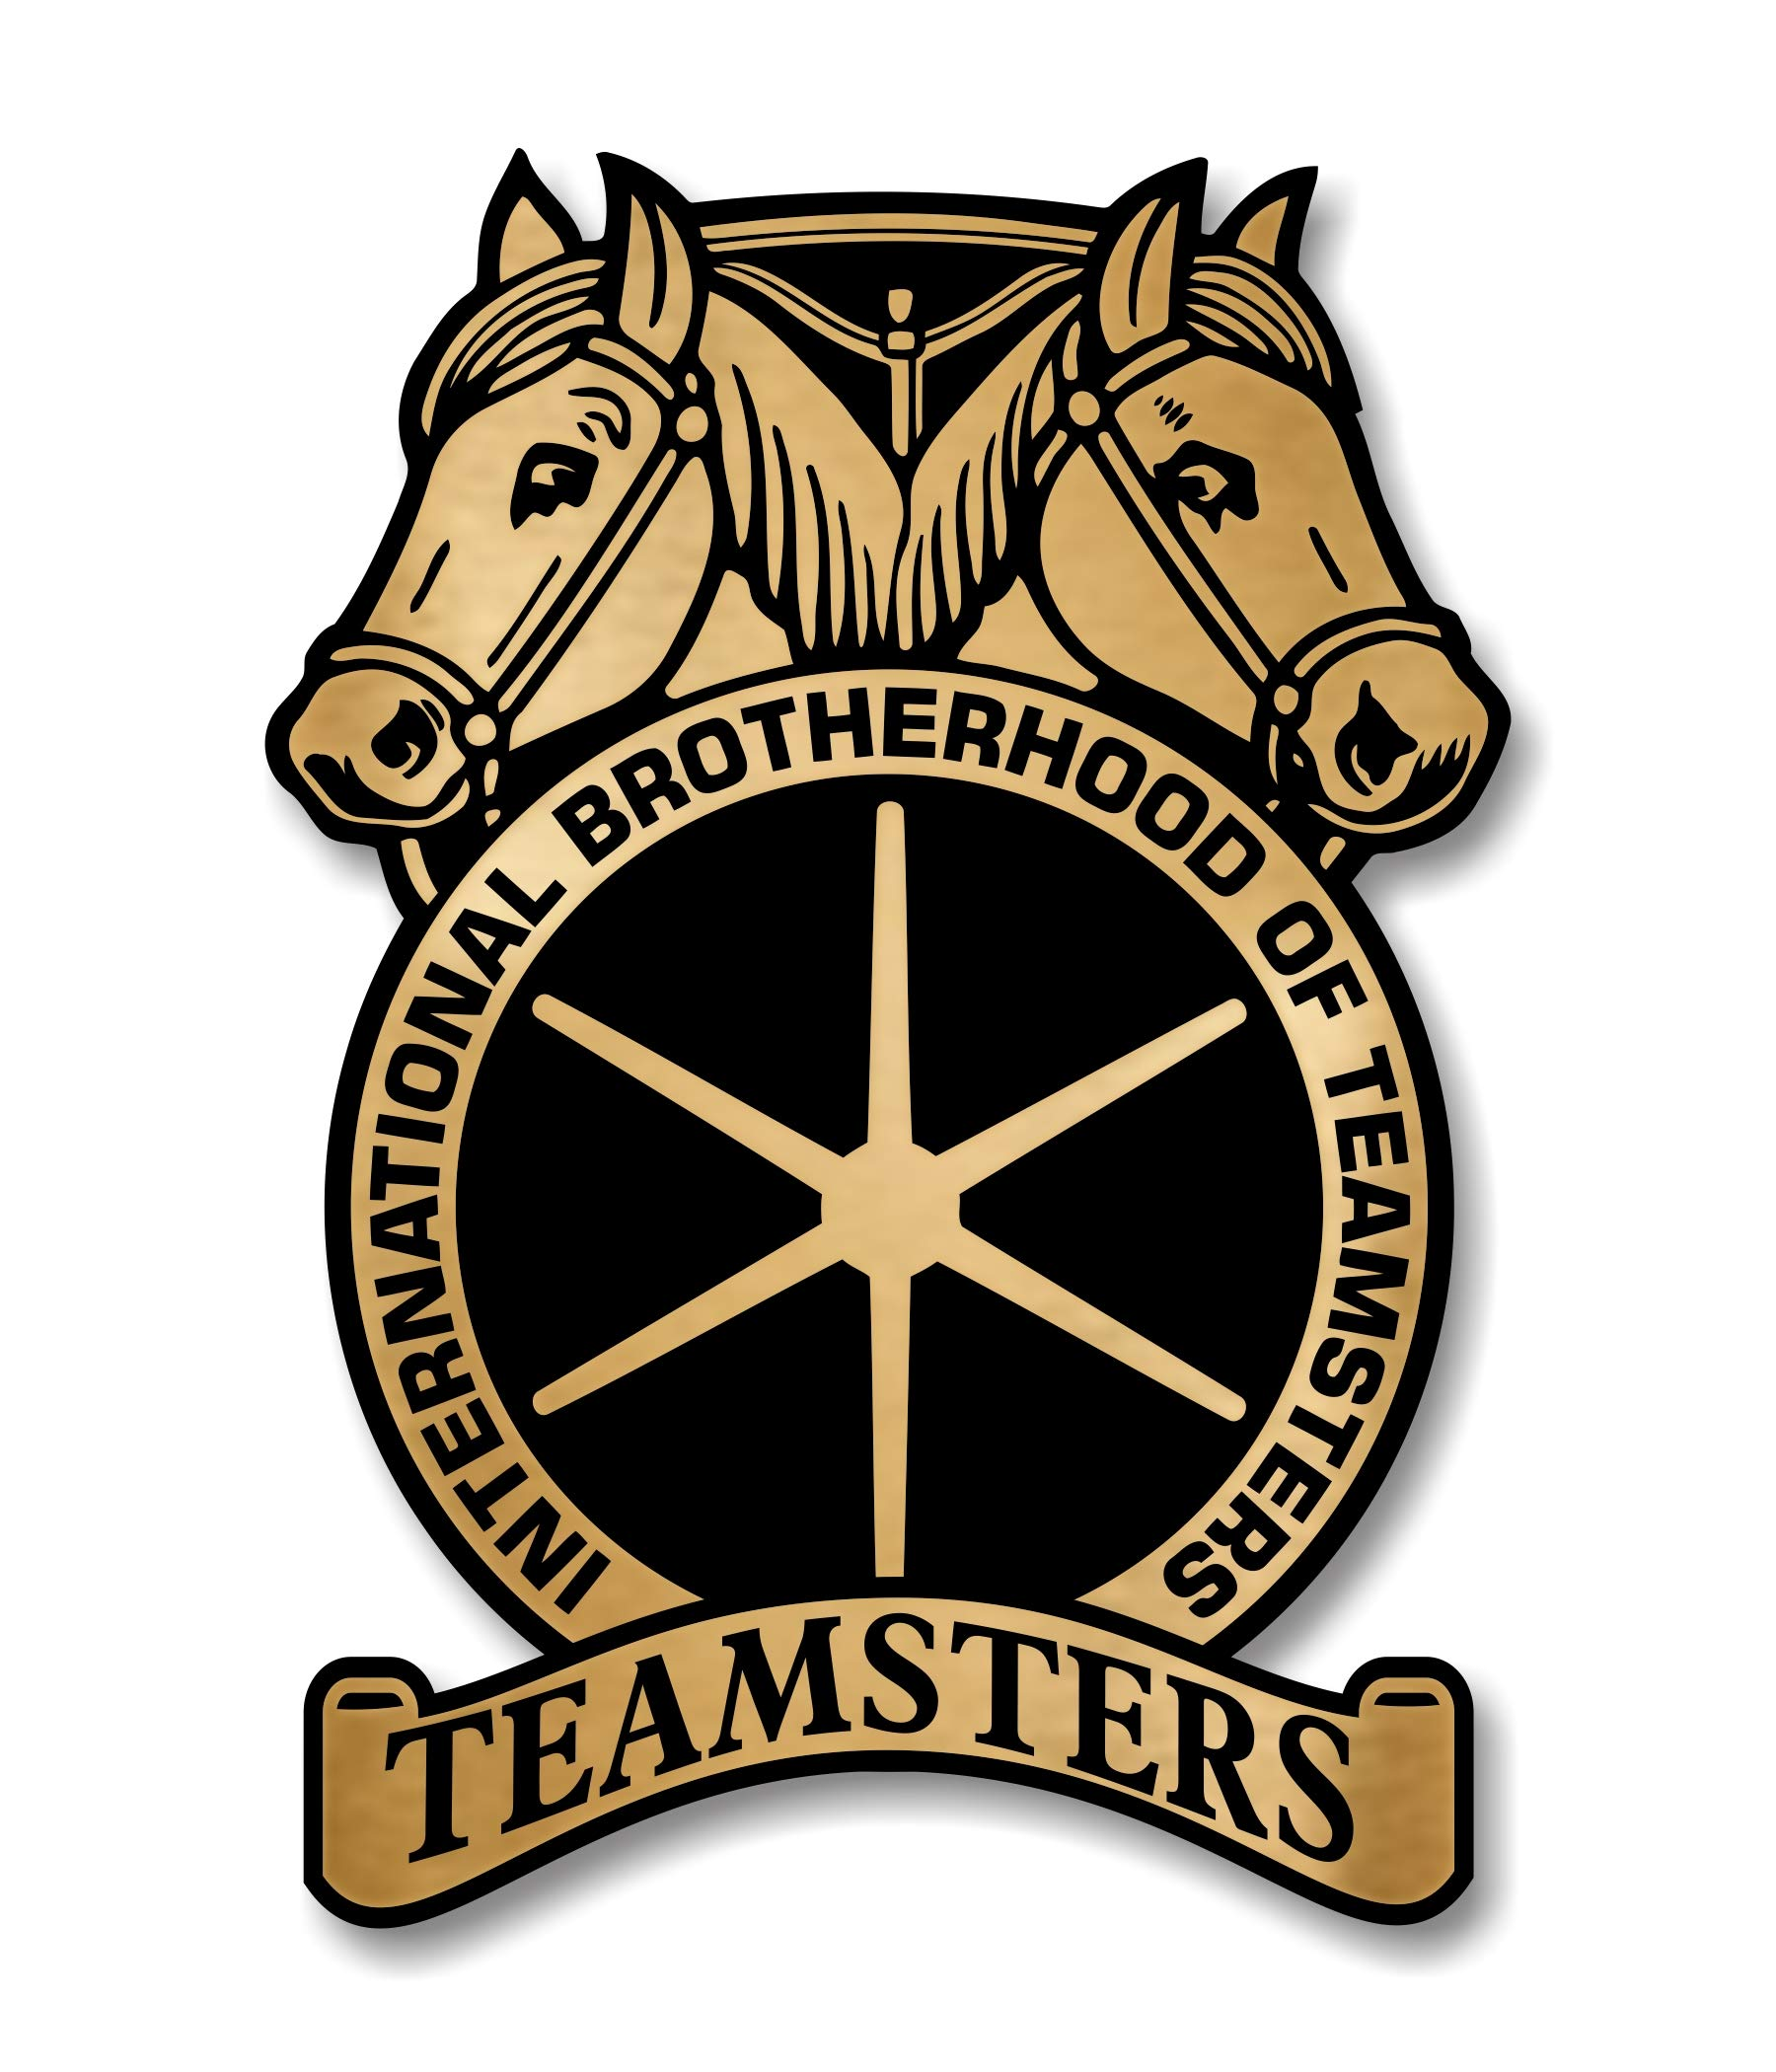 Teamsters Precision Cut Decal